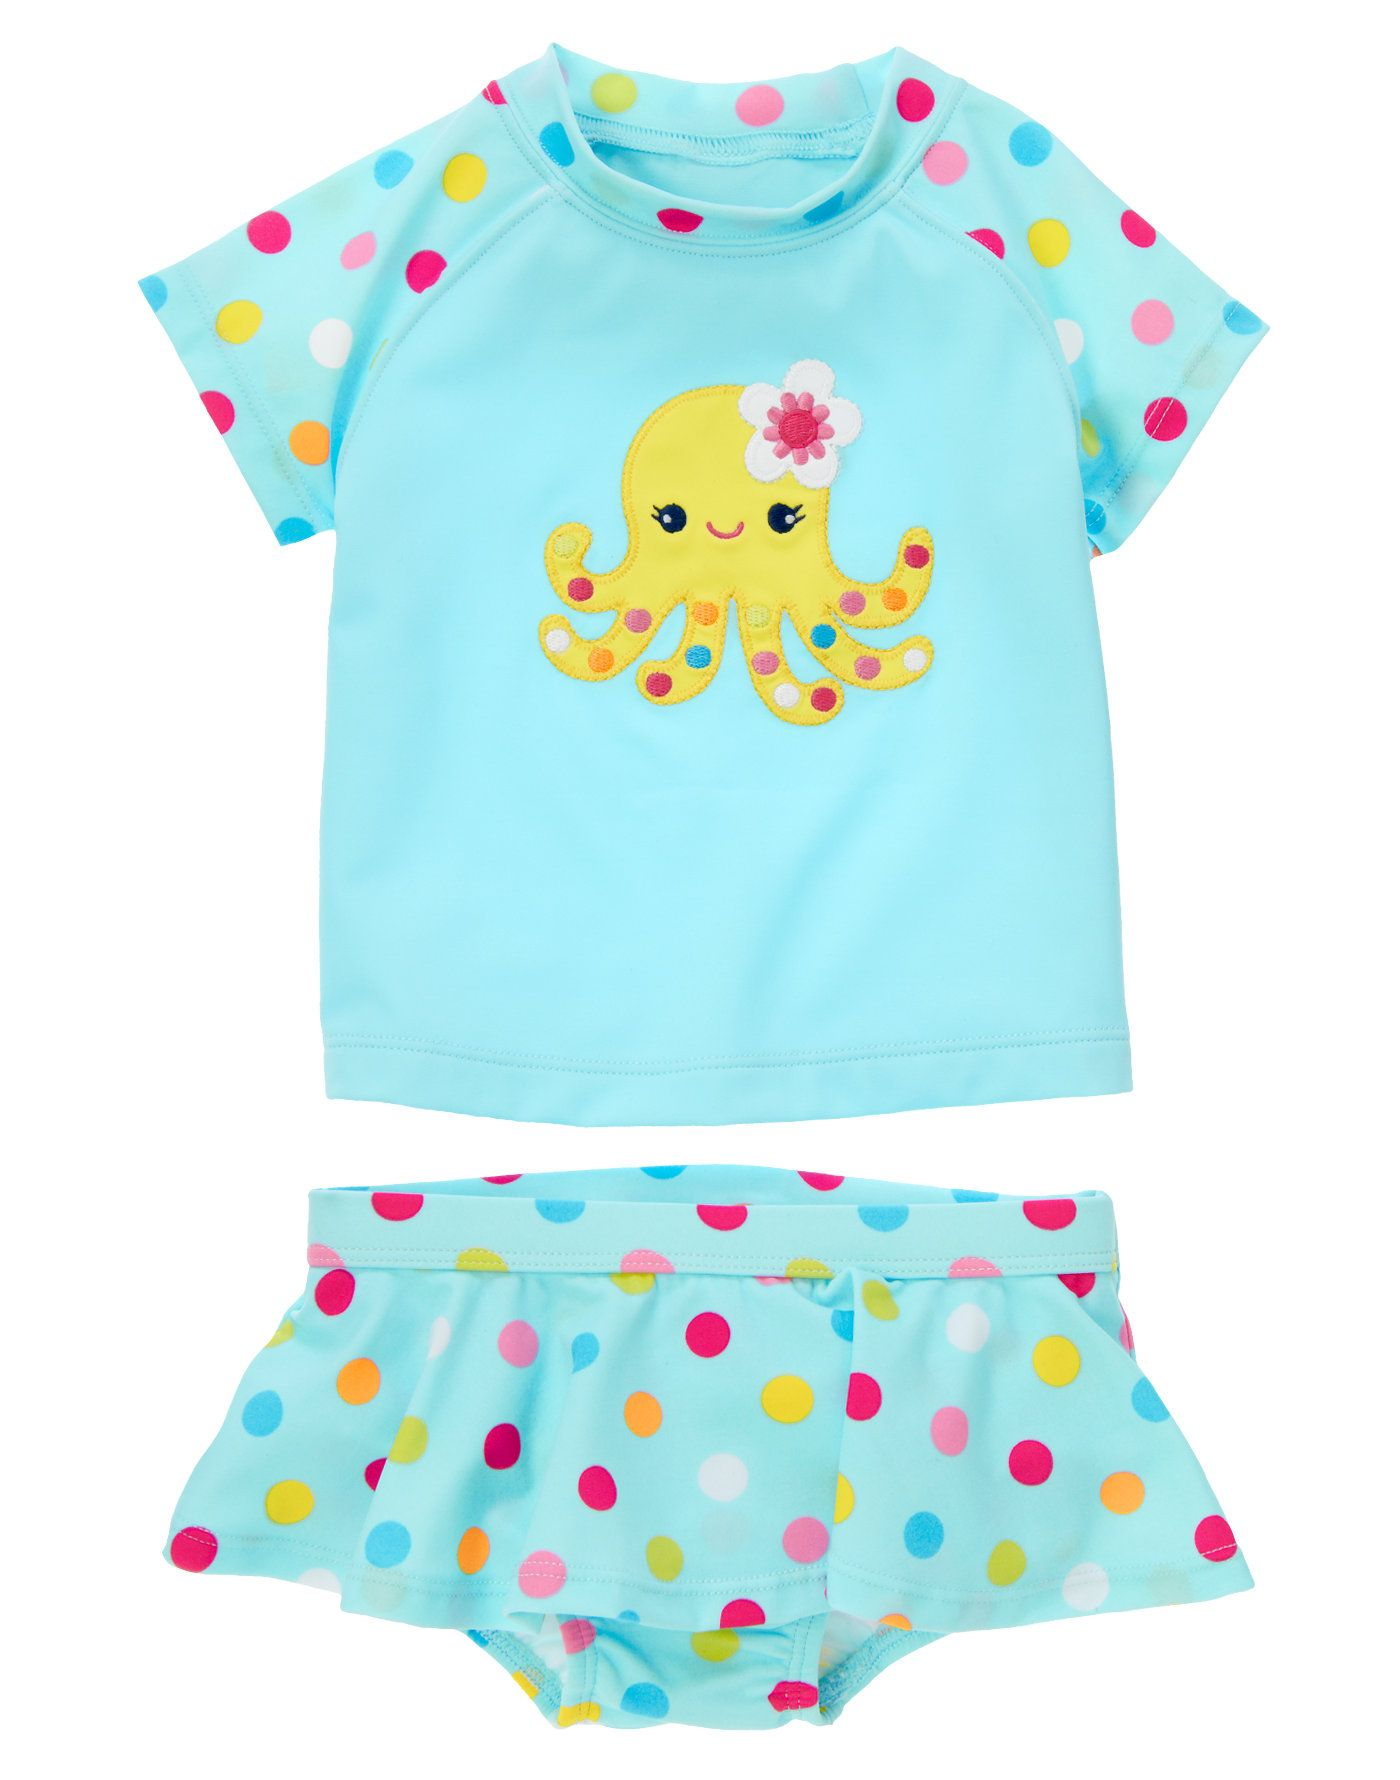 e880854fdd7798 Sweet and playful rash guard with dot print raglan sleeves features a cute  appliquéd octopus with embroidered details. Bright allover dot print  brightens up ...